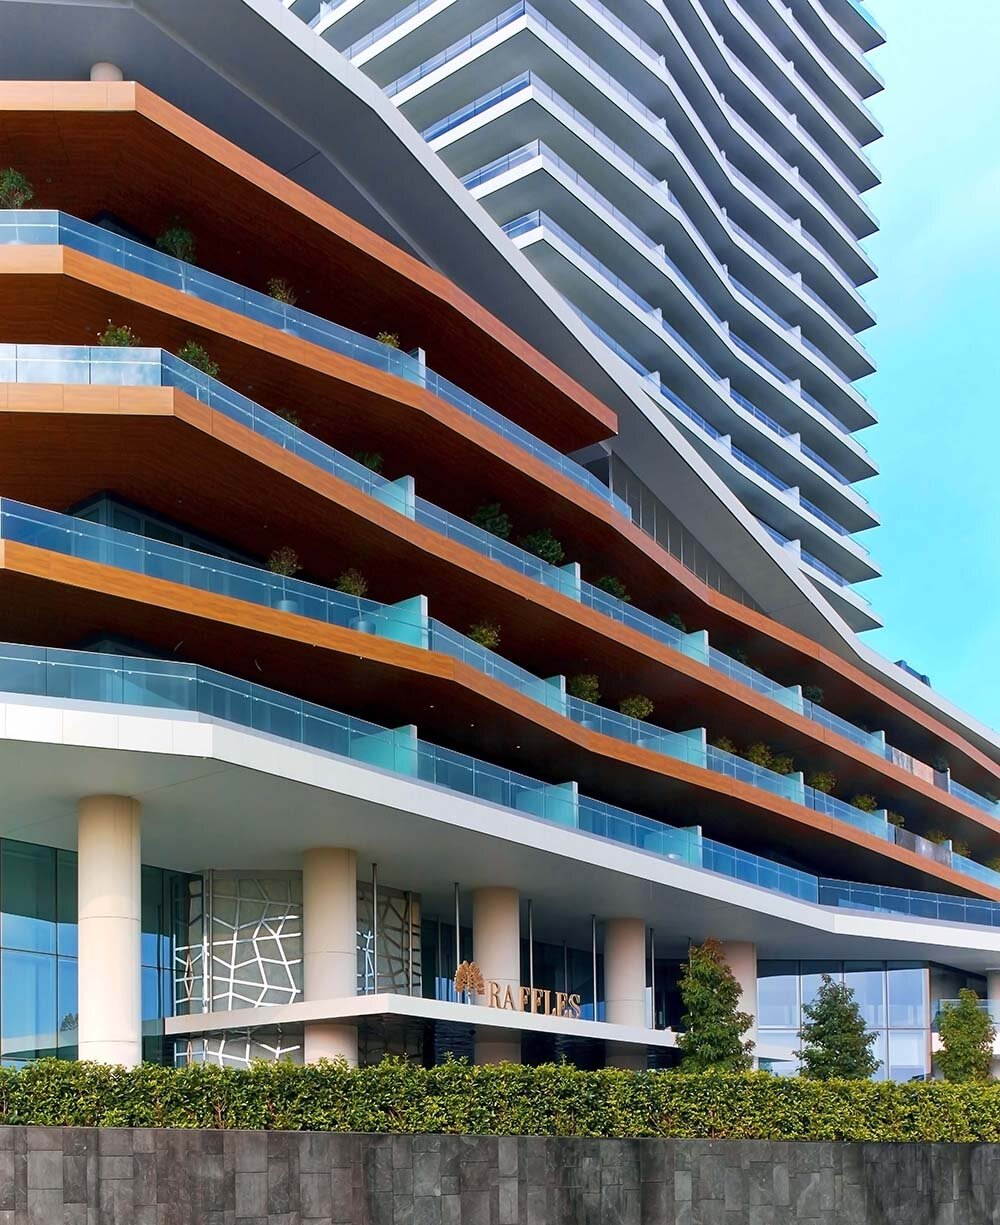 Raffles Istanbul is located at the city's Zorlu Center, a modern shopping and entertainment complex situated above Istanbul's Bosphorus.